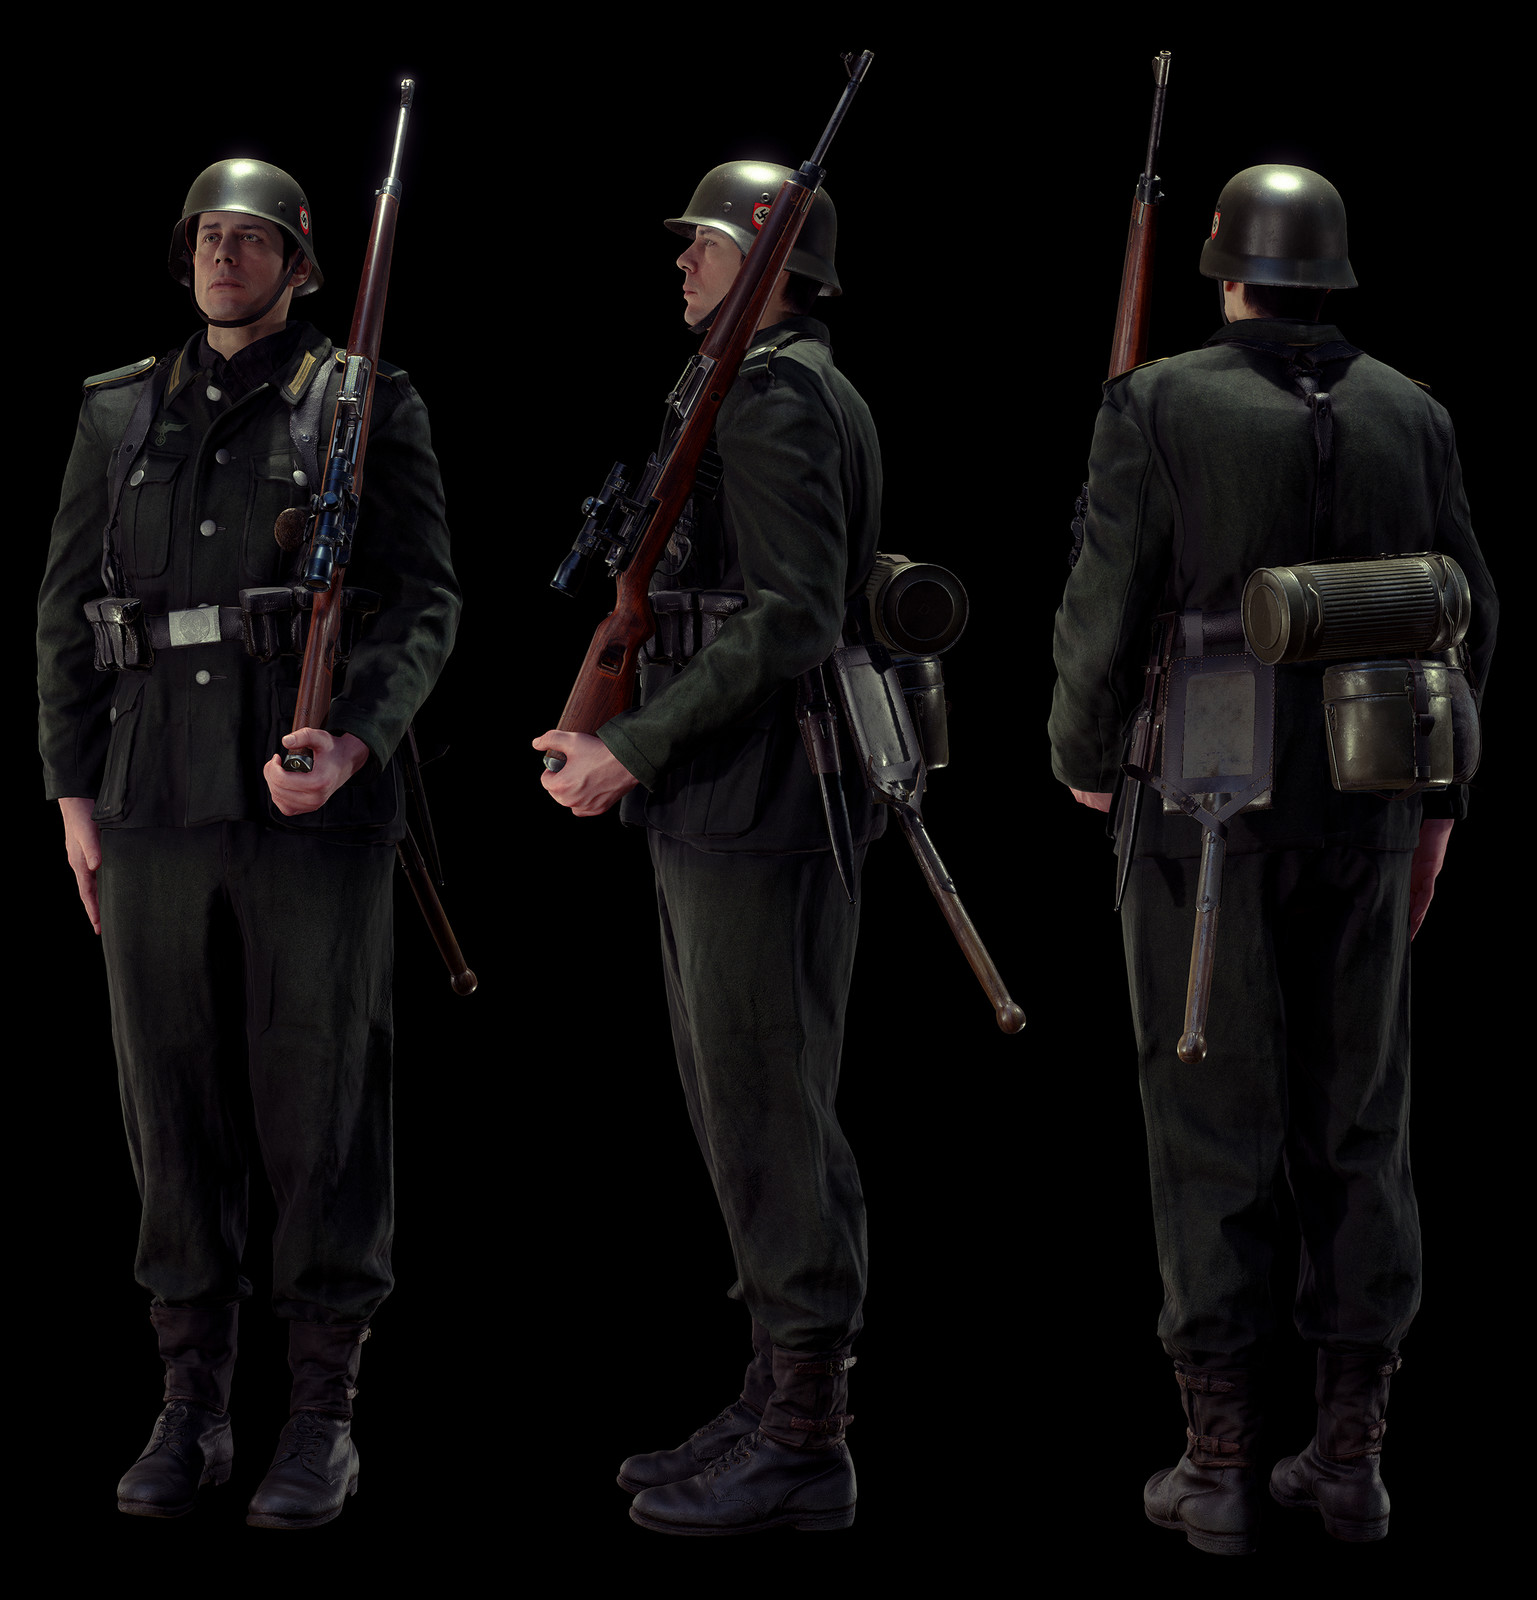 Wehrmacht standing at attention with Gewehr 43